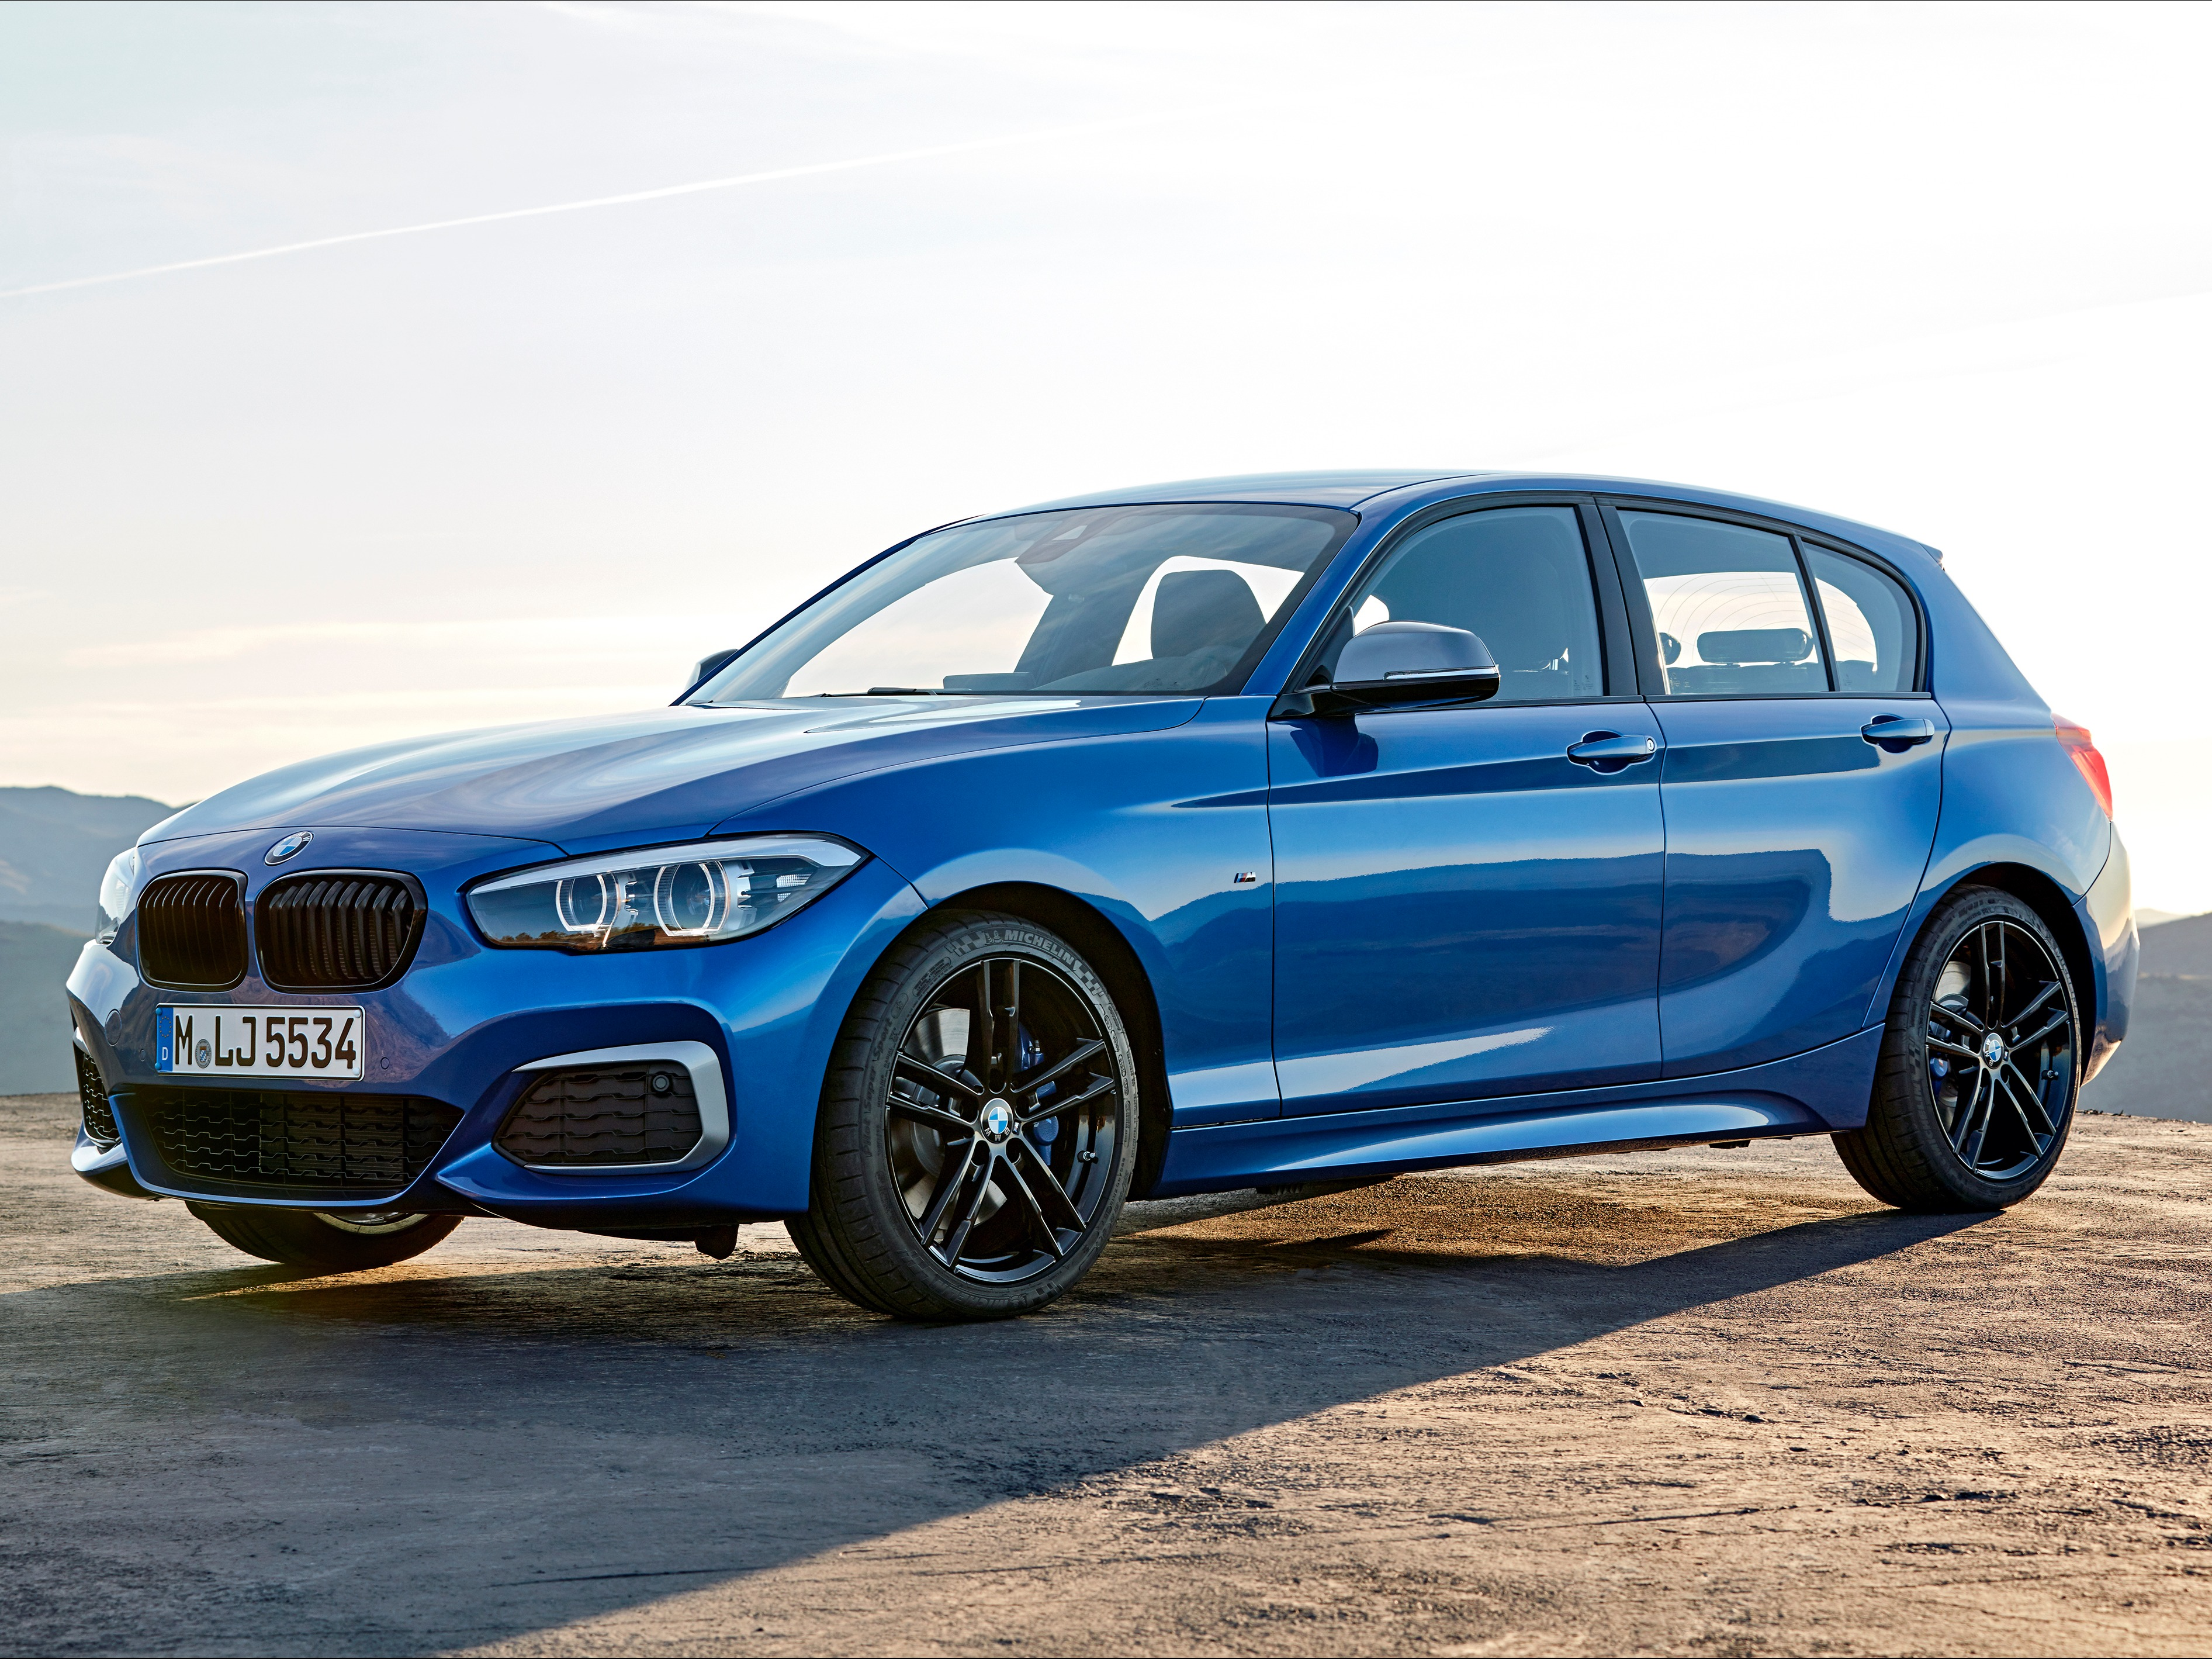 118i [1.5] M Sport Shadow Edition 5dr